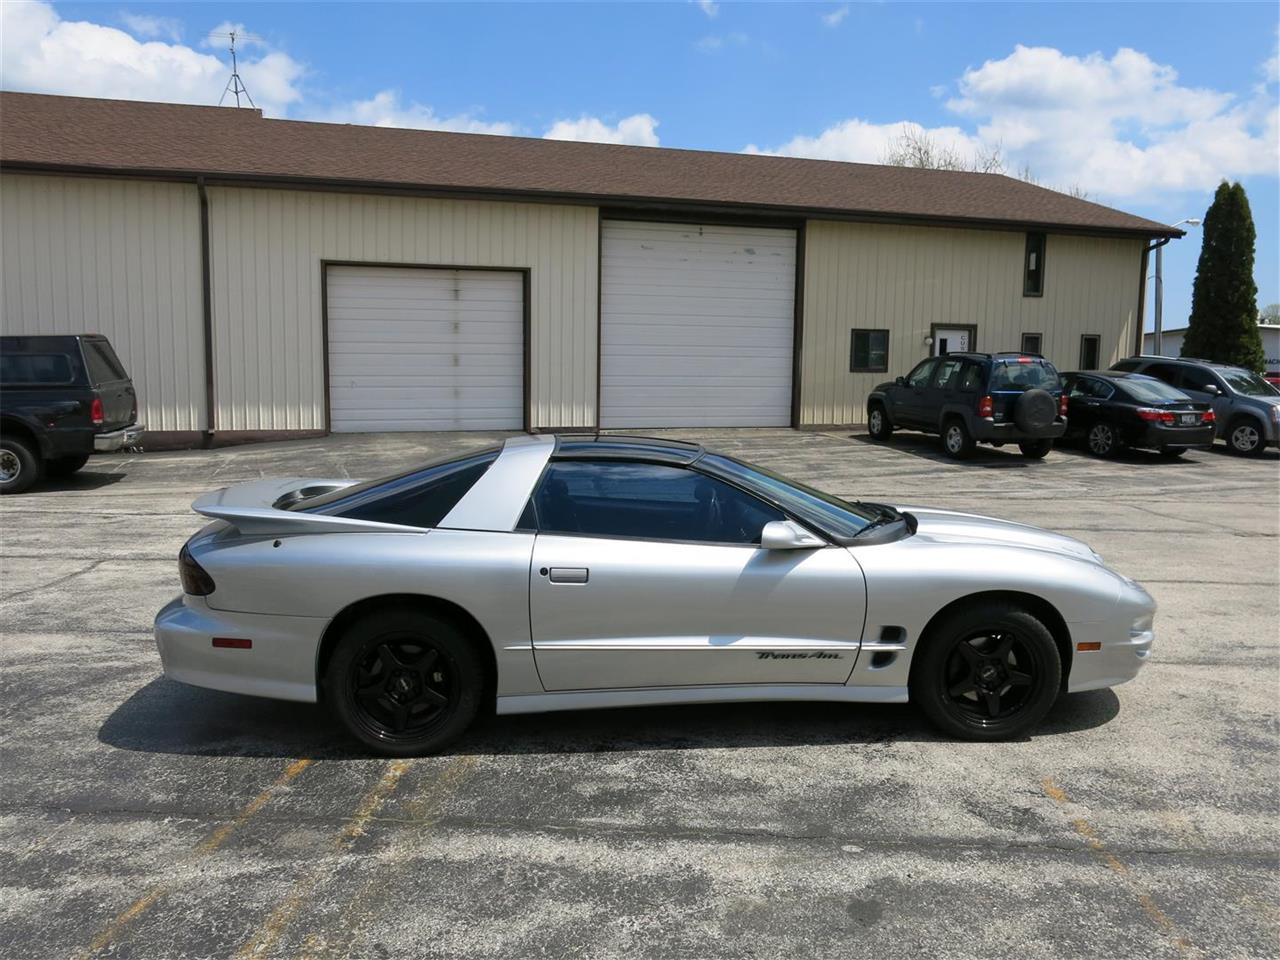 Large Picture of '00 Pontiac Firebird Trans Am WS6 located in Wisconsin - $11,000.00 - LEKM